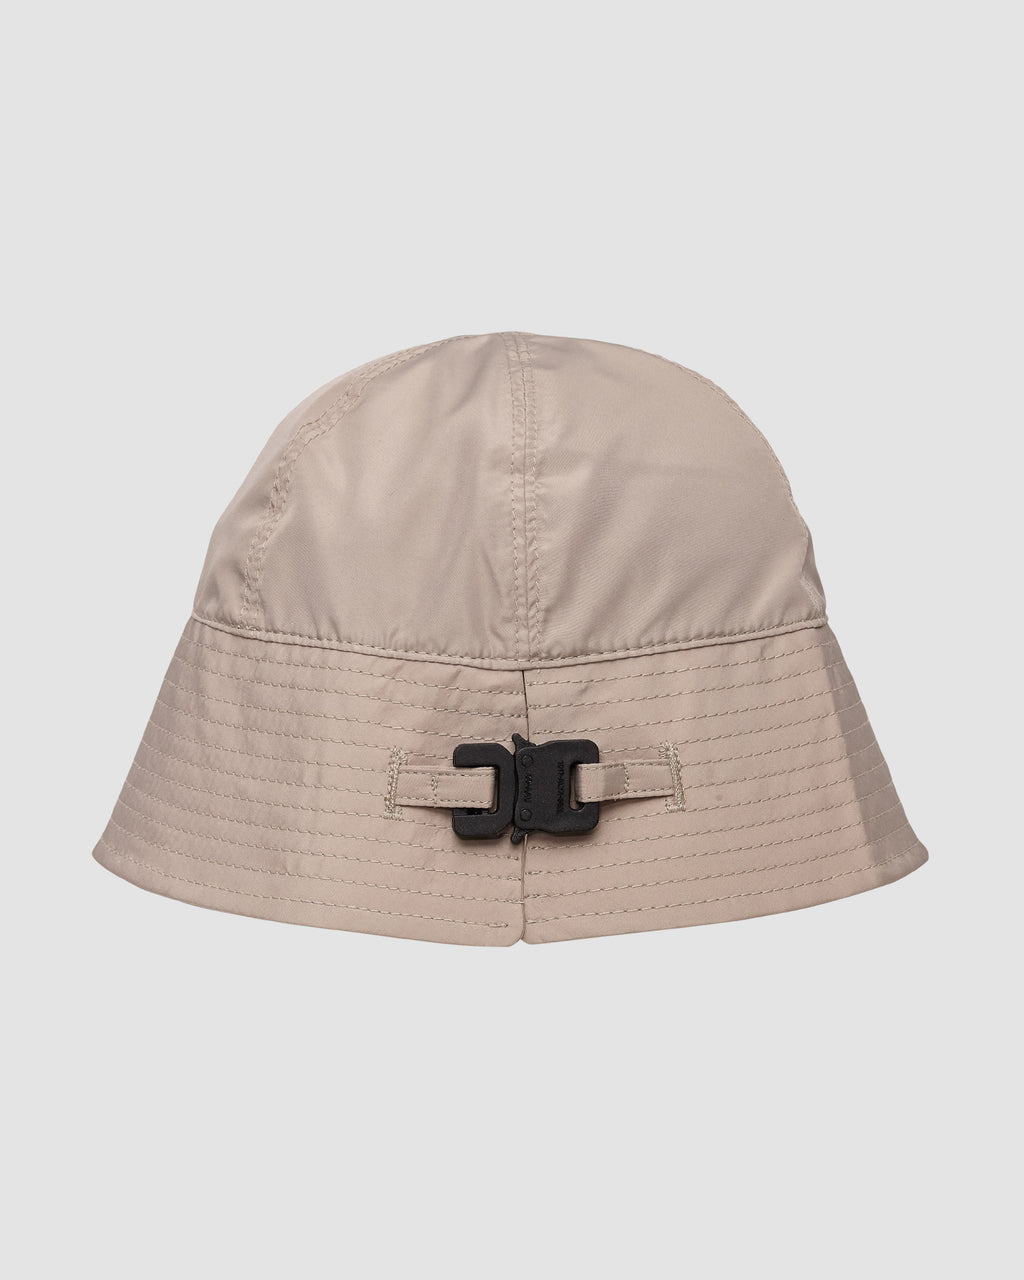 1017 ALYX 9SM | NARROW BUCKET HAT W BUCKLE | Hat | Accessories, Google Shopping, Hat, HATS, Man, S20, S20EXSH, Tan, UNISEX, Woman